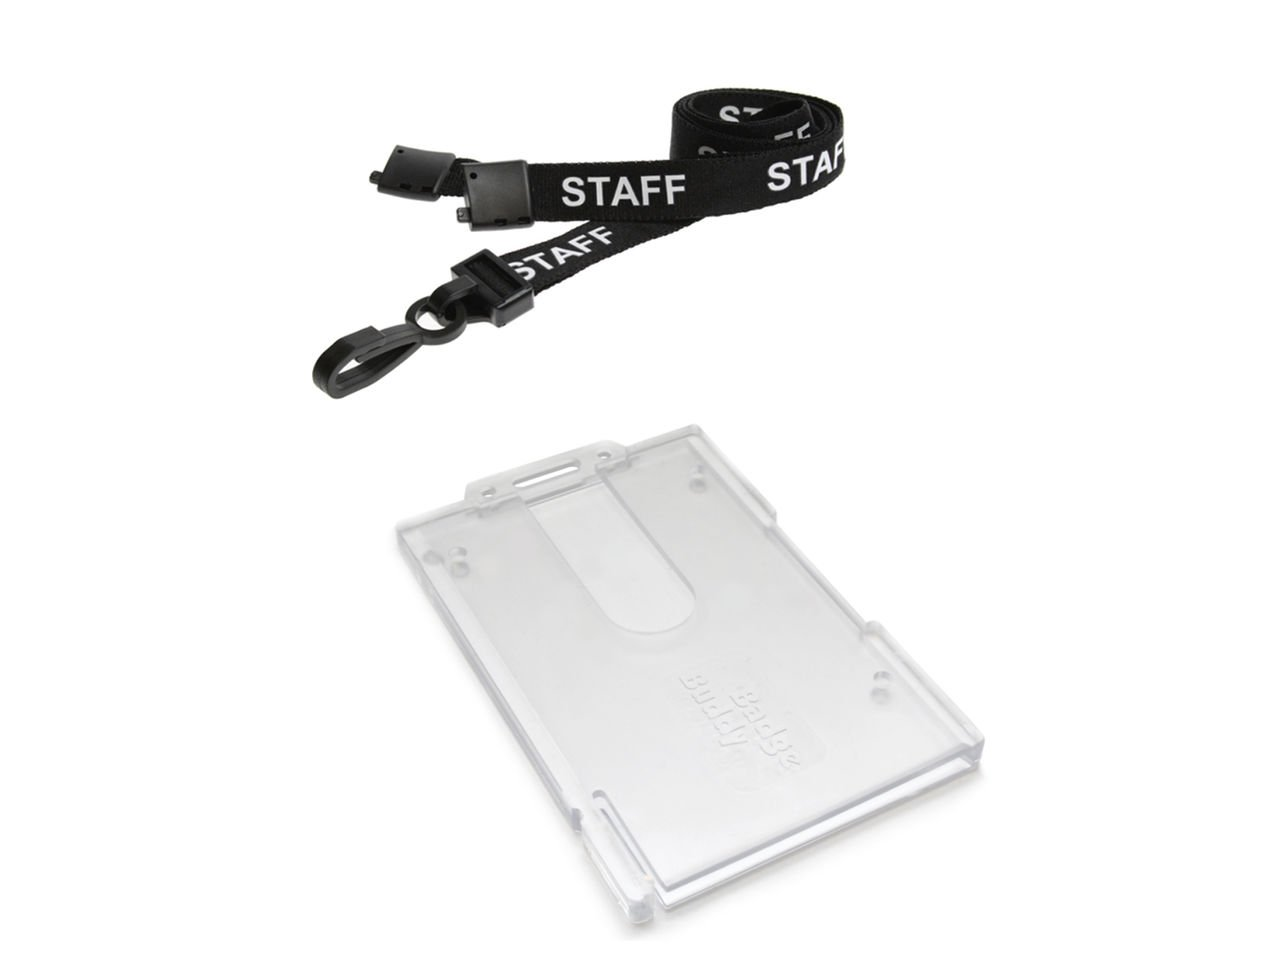 ID Card It ID Badge Holder Vertical Badge Buddy and Printed Black Staff Neck Strap Safety Breakaway Lanyard- 100